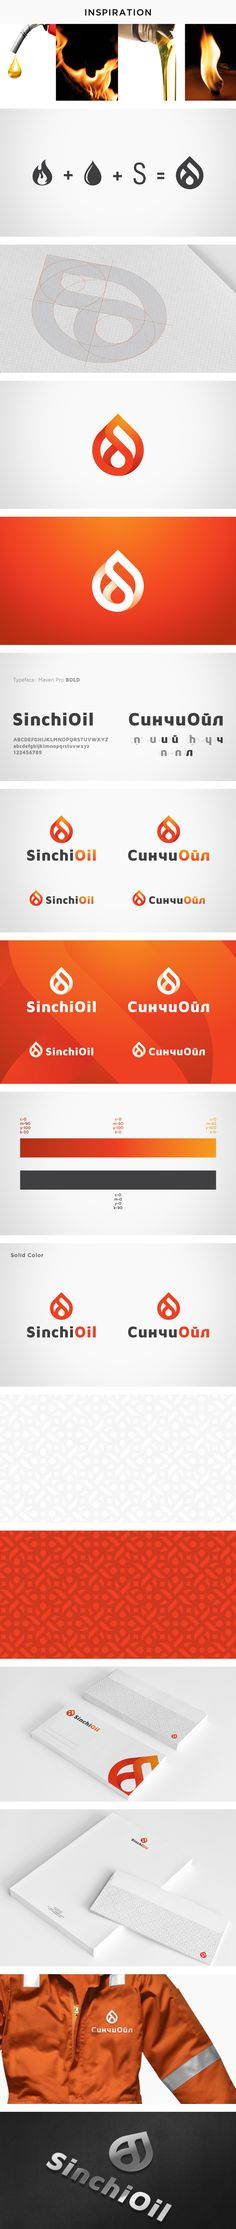 Sinchioil Visual Identity